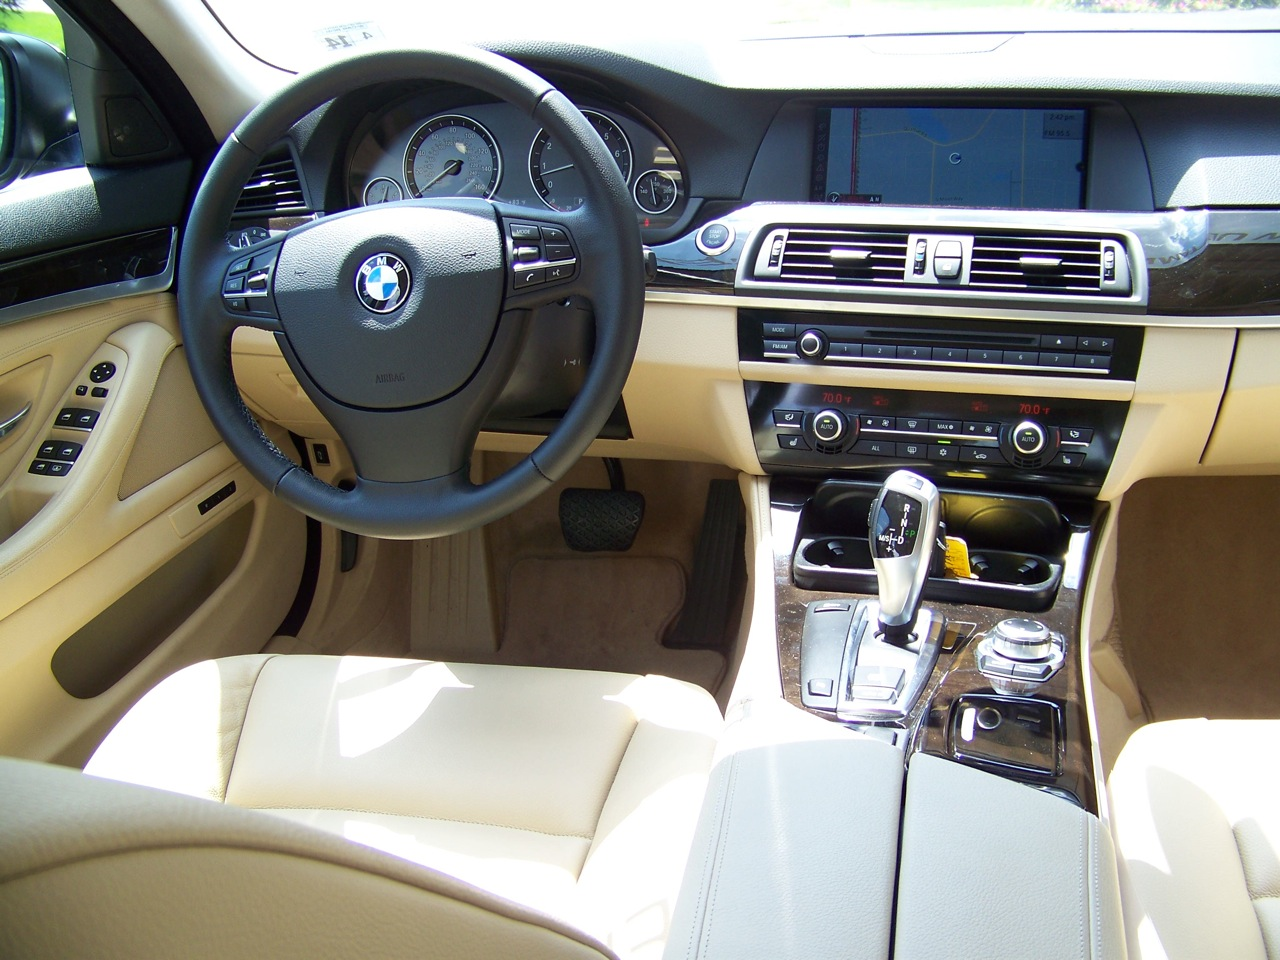 Coupe Series 2012 bmw 330i specs Review: 2011 BMW 5 Series (535i and 550i) - The Truth About Cars